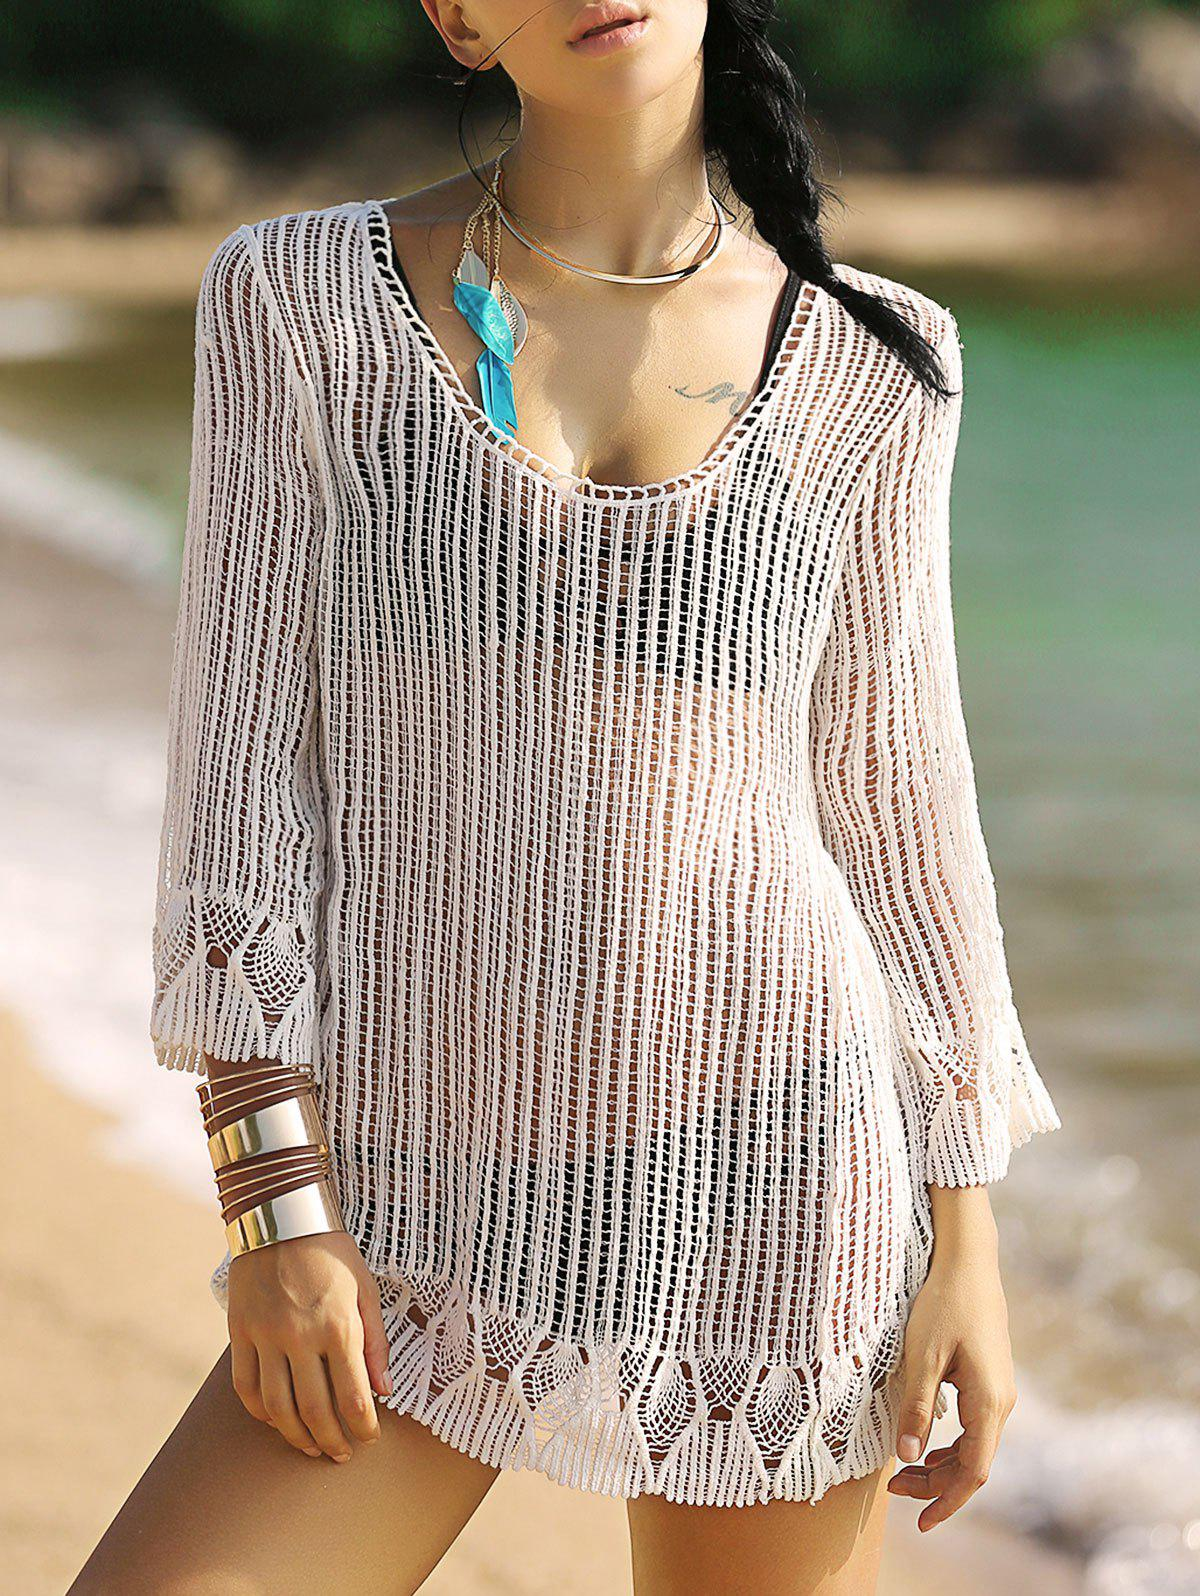 Alluring Women's 3/4 Sleeve Hollow Out Fringed Cover-Up